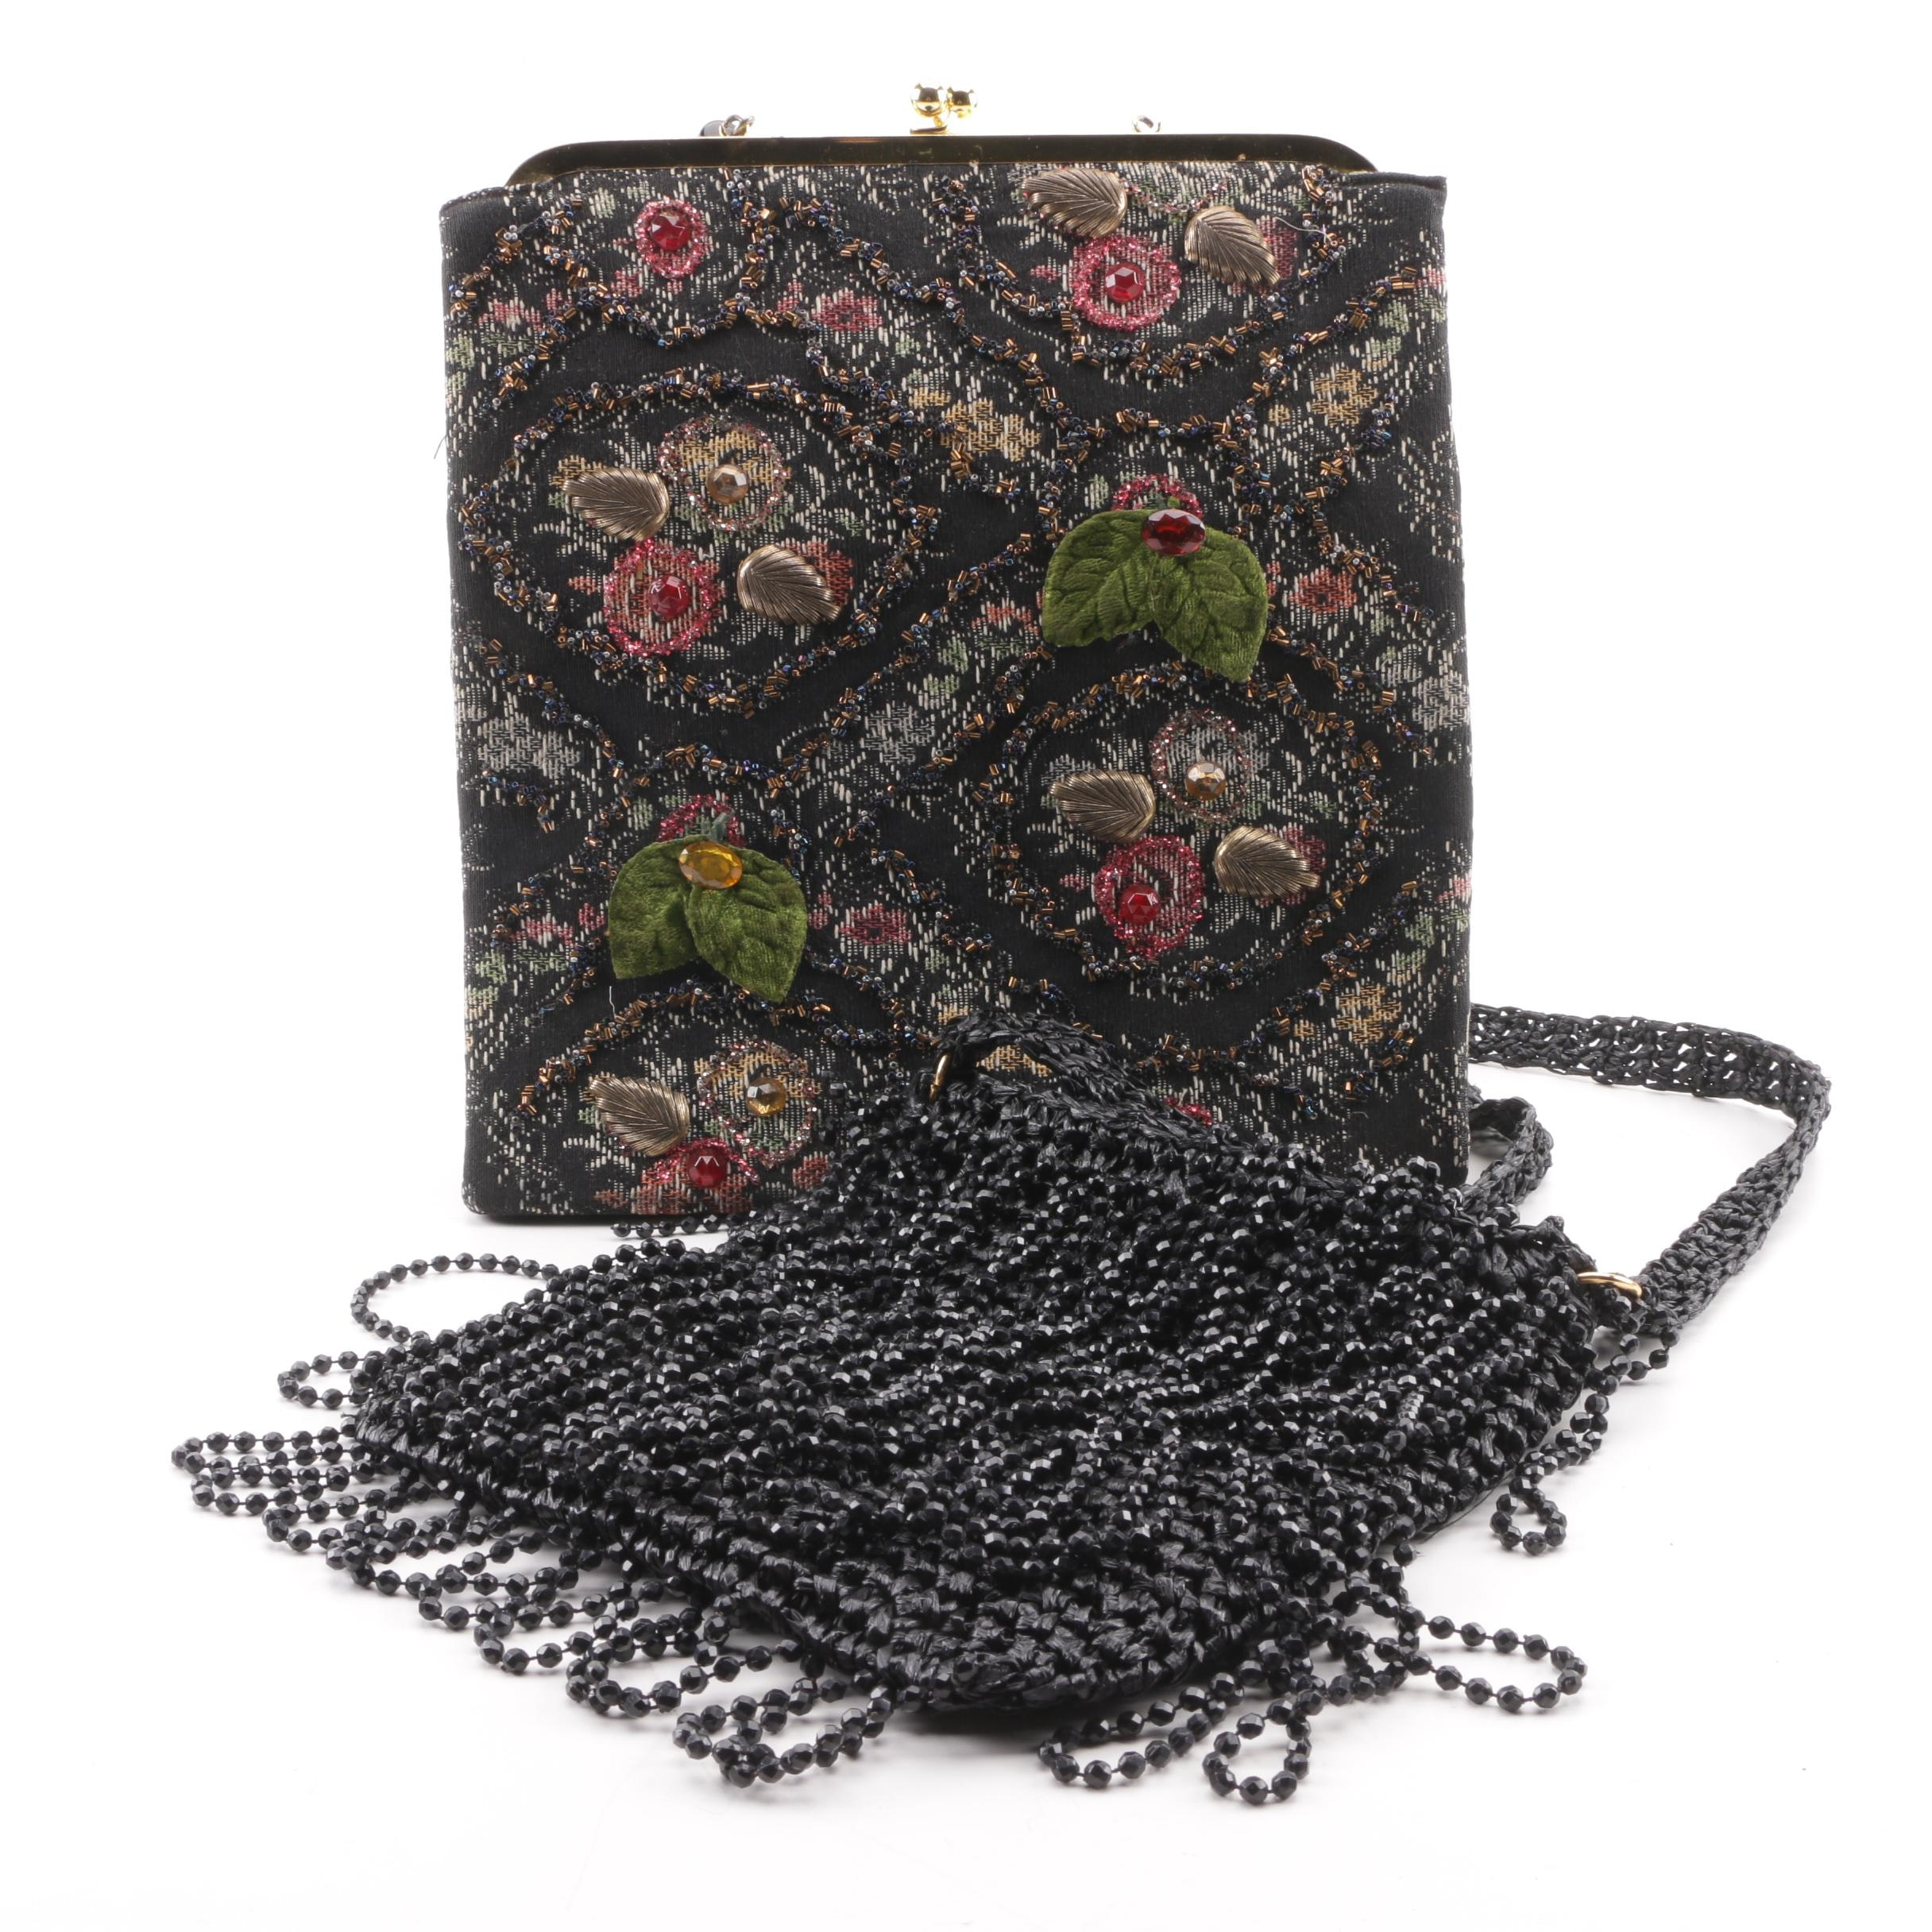 Vintage Embellished Floral Carpet Bag and Woven Shoulder Bag with Beaded Fringe